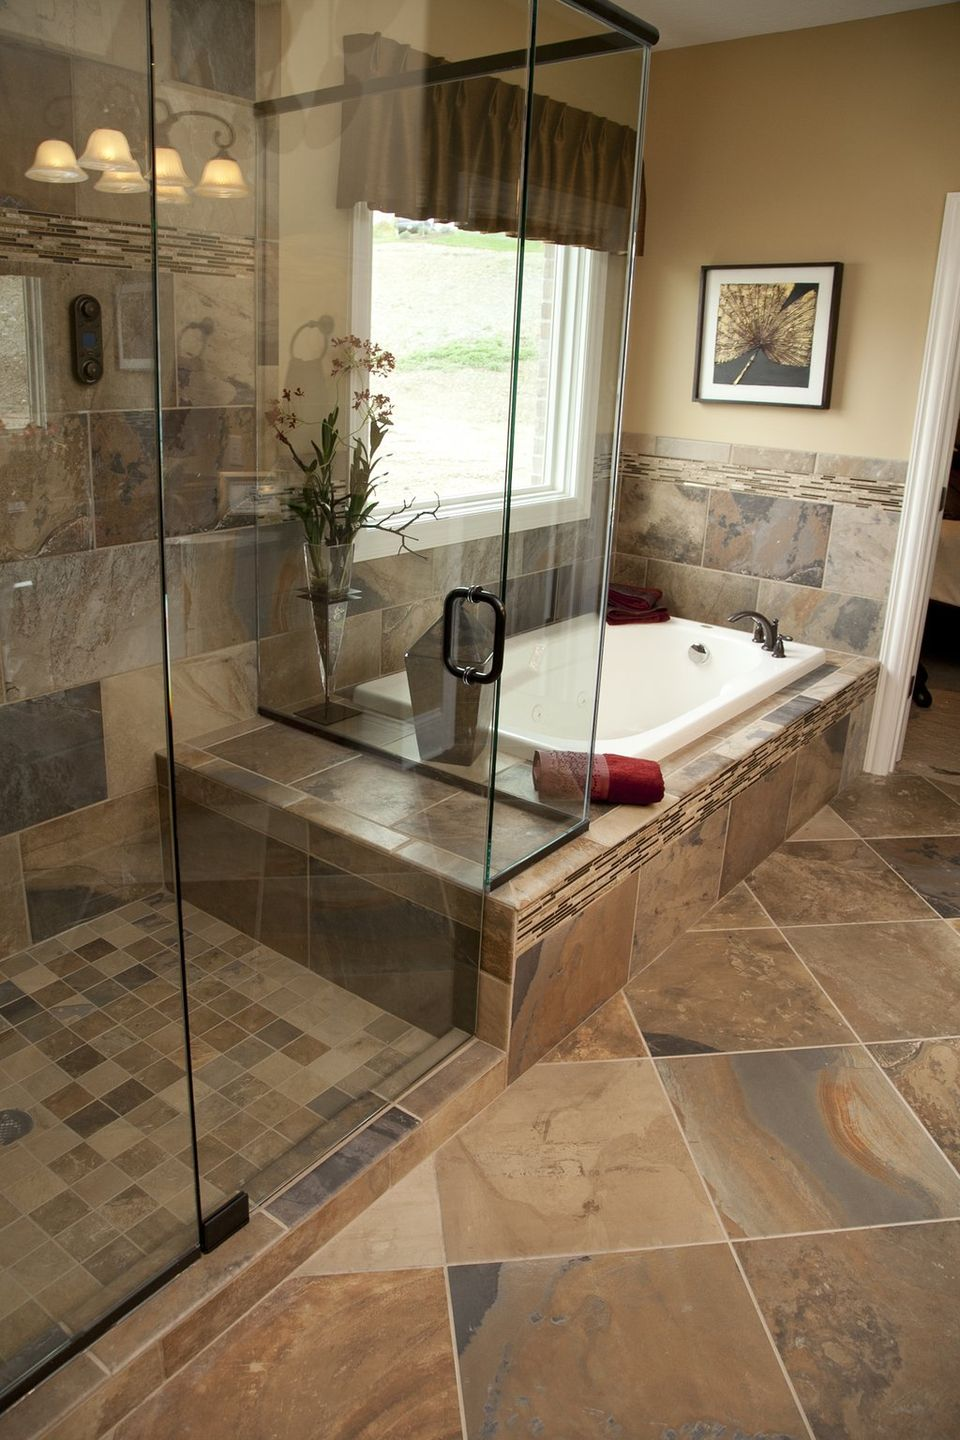 33 stunning pictures and ideas of natural stone bathroom for Bathroom tile ideas